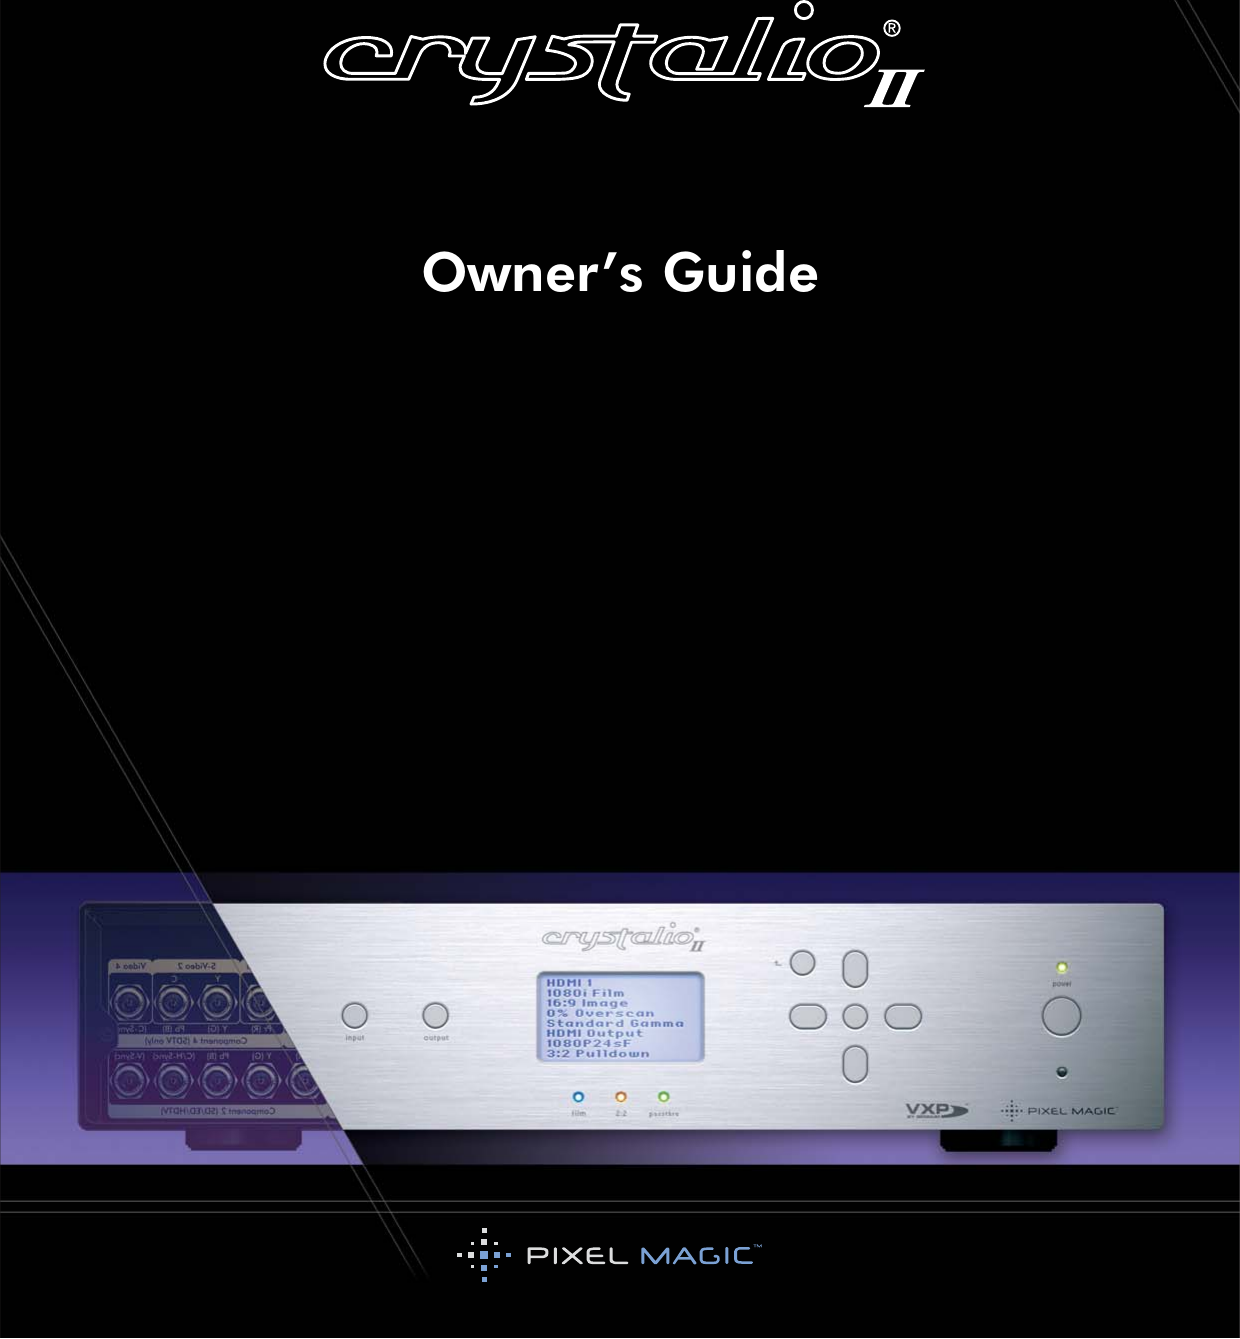 Pixel Magic Systems Vps3800 Users Manual Crystalio II